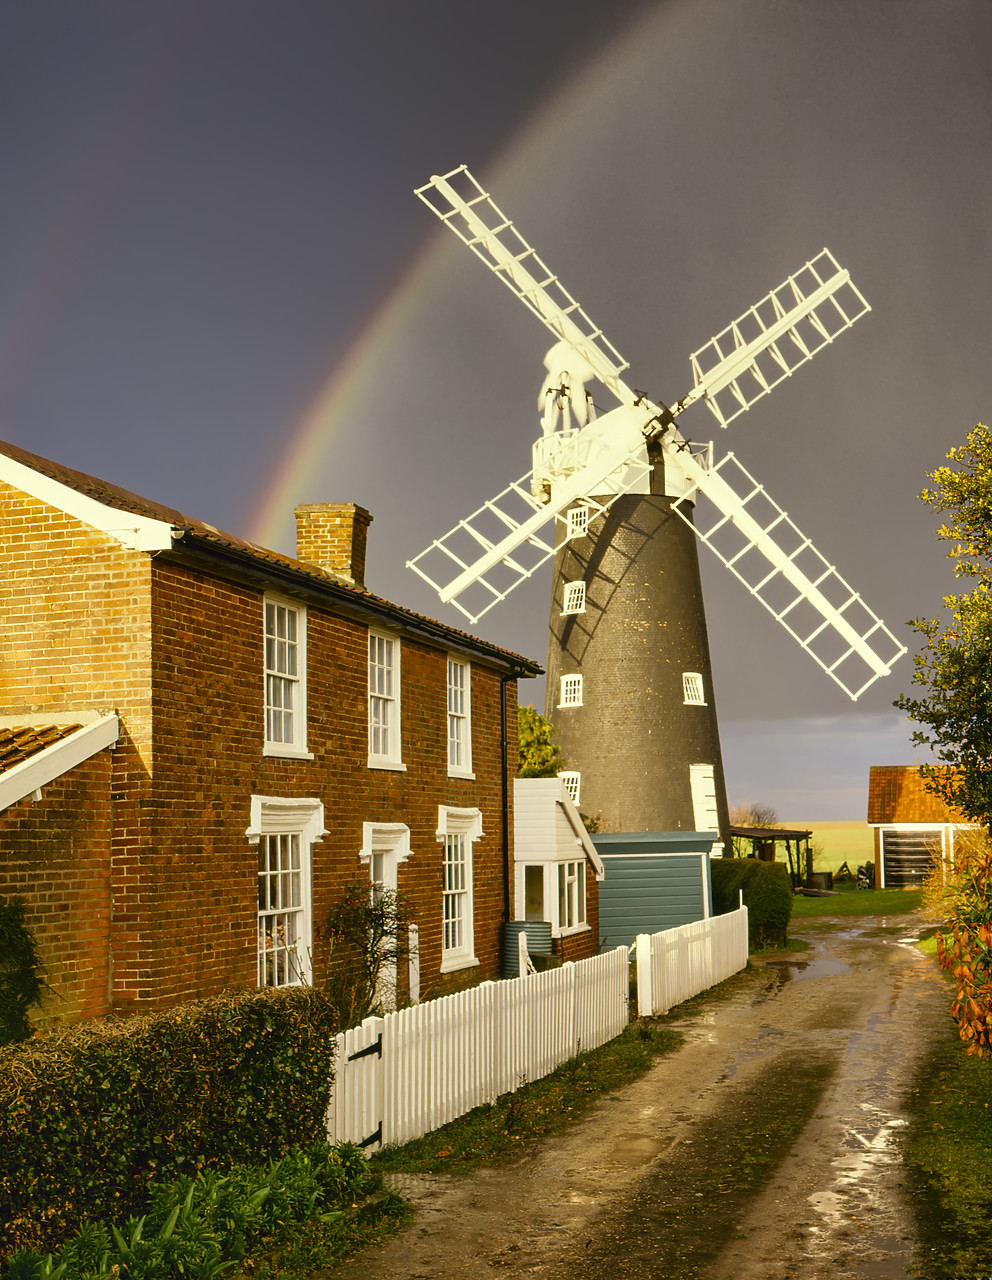 #400142-1 - Rainbow over Wicklewood Mill, Norfolk, England